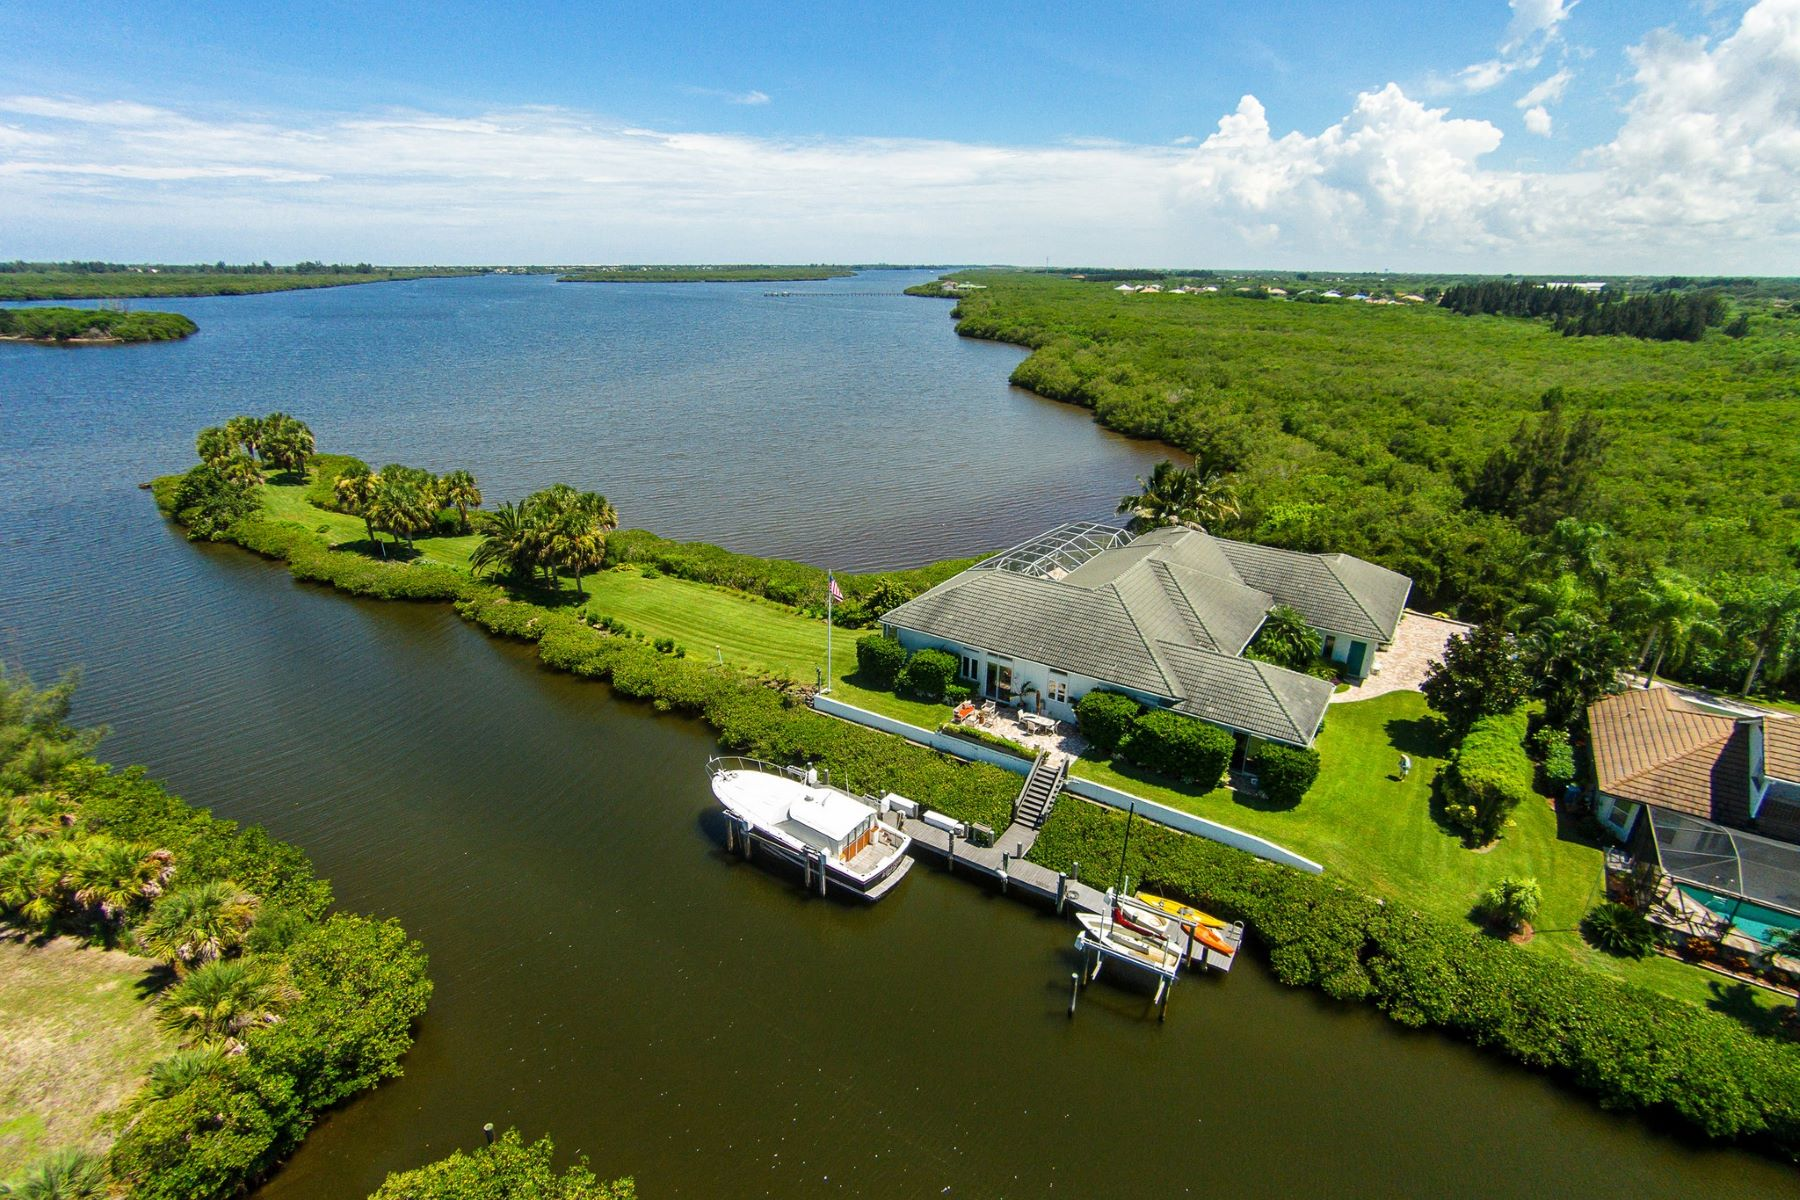 Moradia para Venda às Riverfront Point Lot 3490 Marsha Lane Vero Beach, Florida, 32967 Estados Unidos